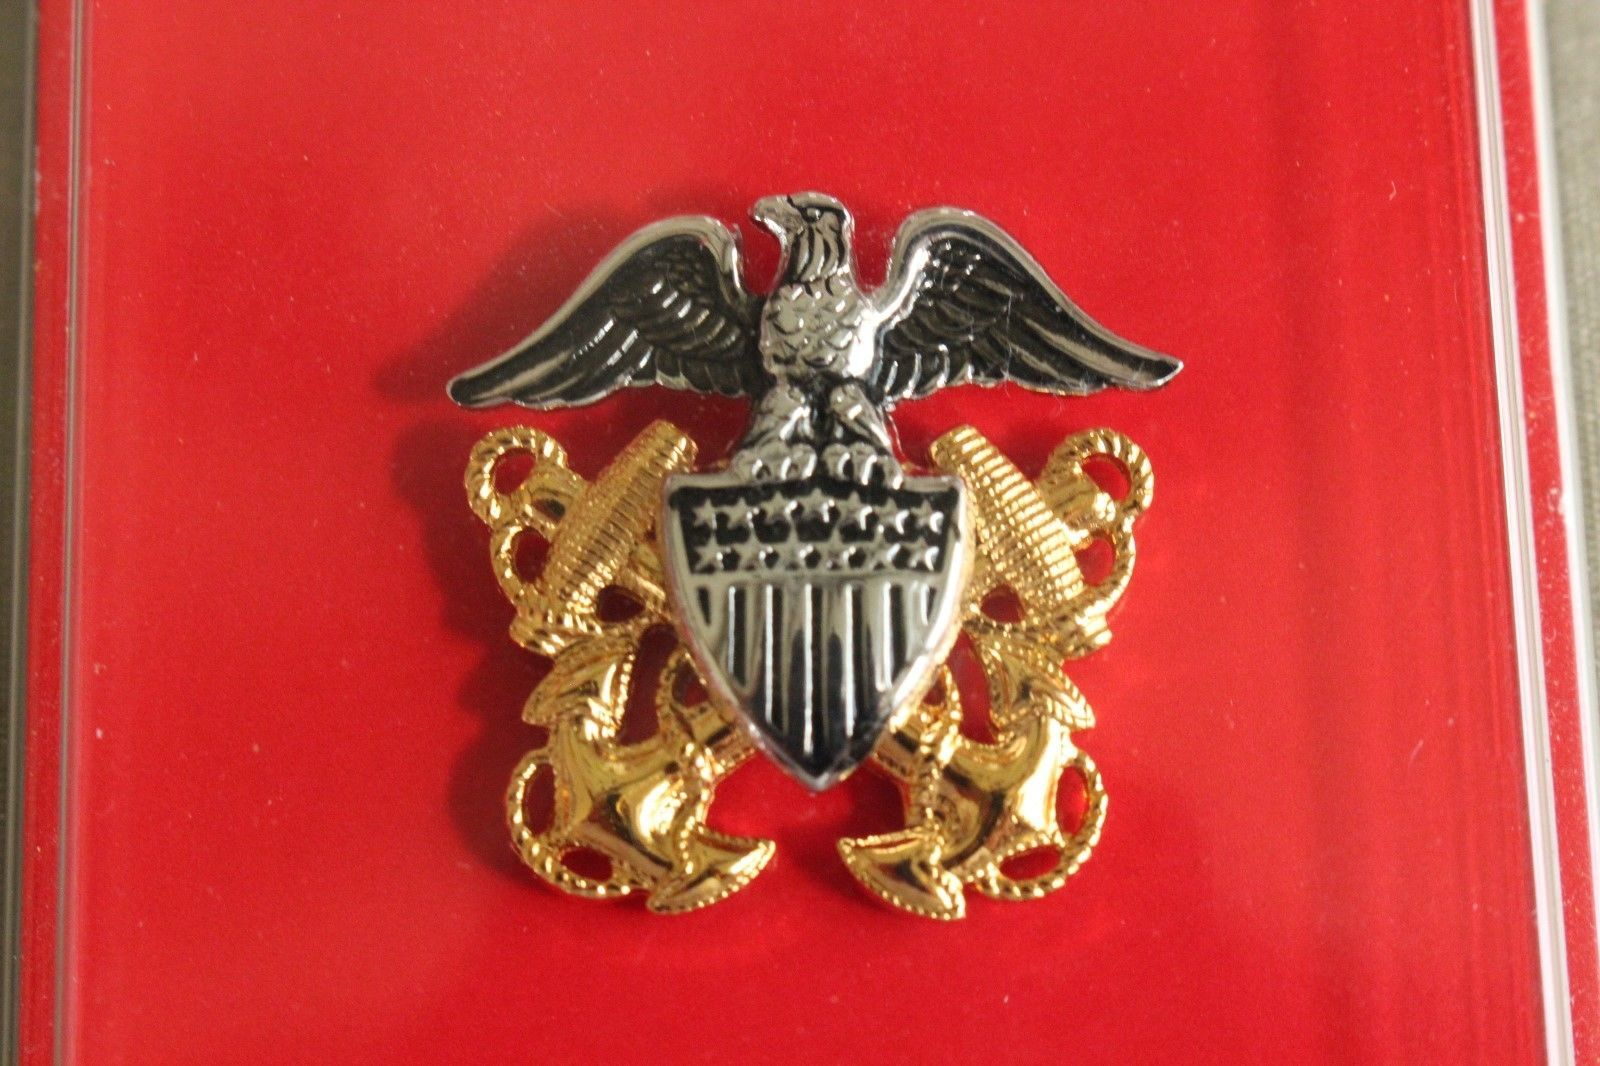 USN NAVY O-7 RDML RANK OFFICER GARRISON CAP BADGE & DEVICE REDUCED SIZE MINI HR